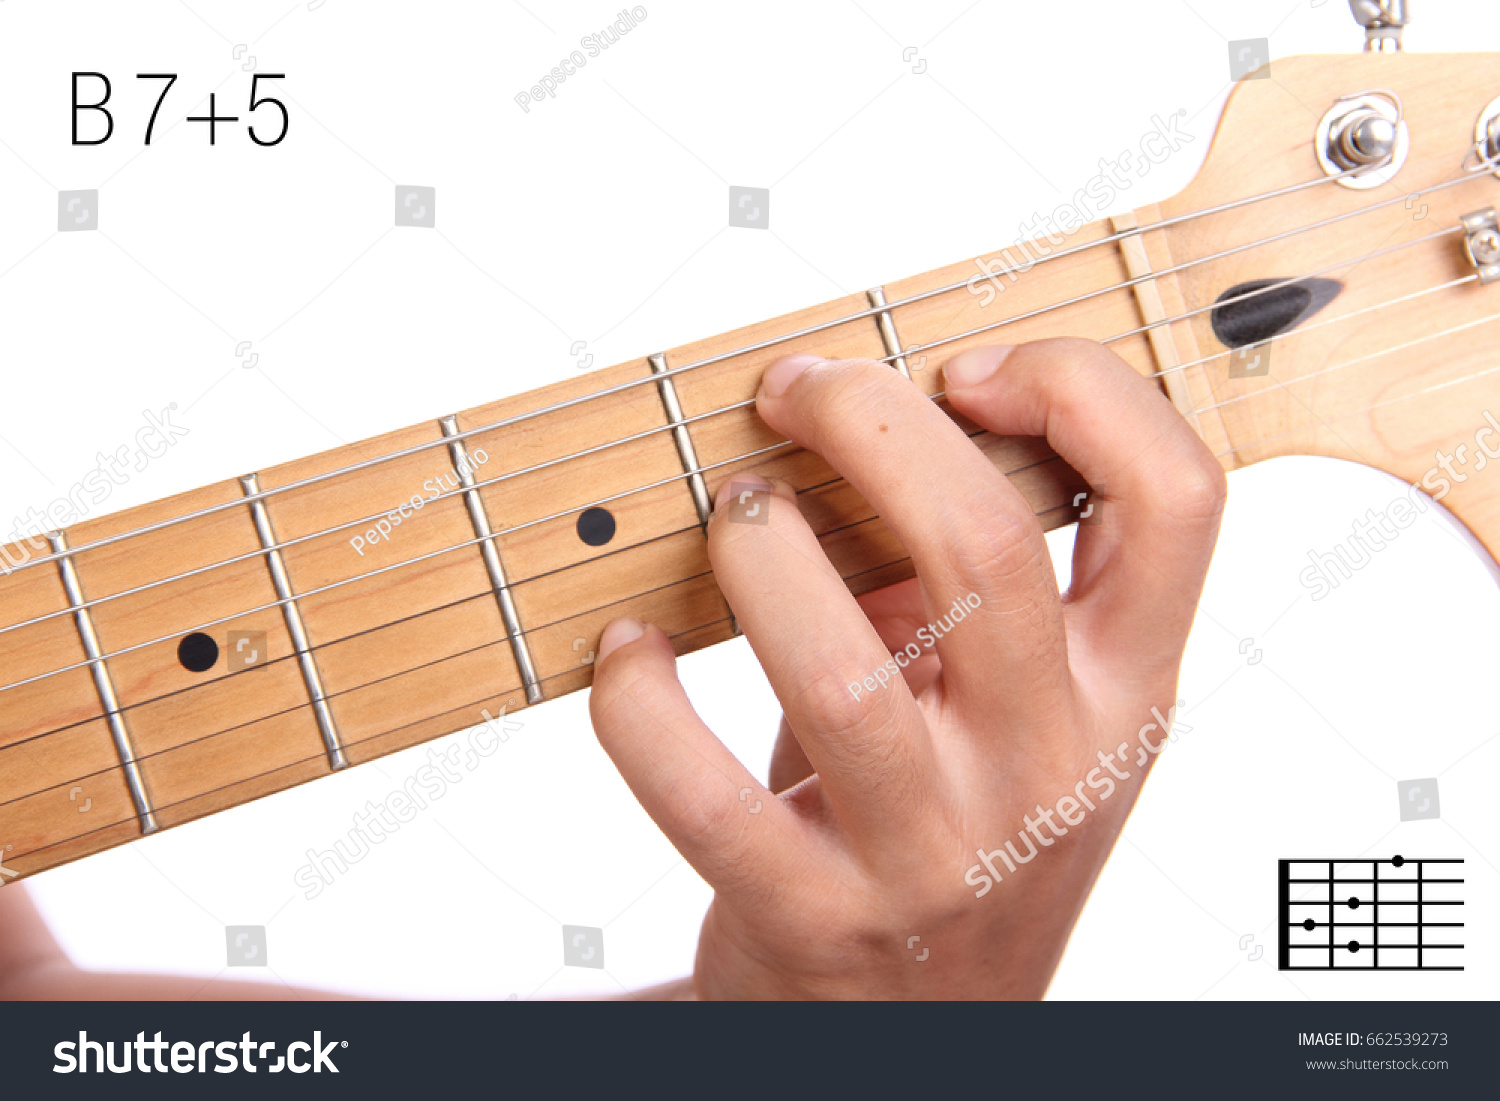 B 75 Advanced Guitar Keys Series Closeup Stock Photo Royalty Free